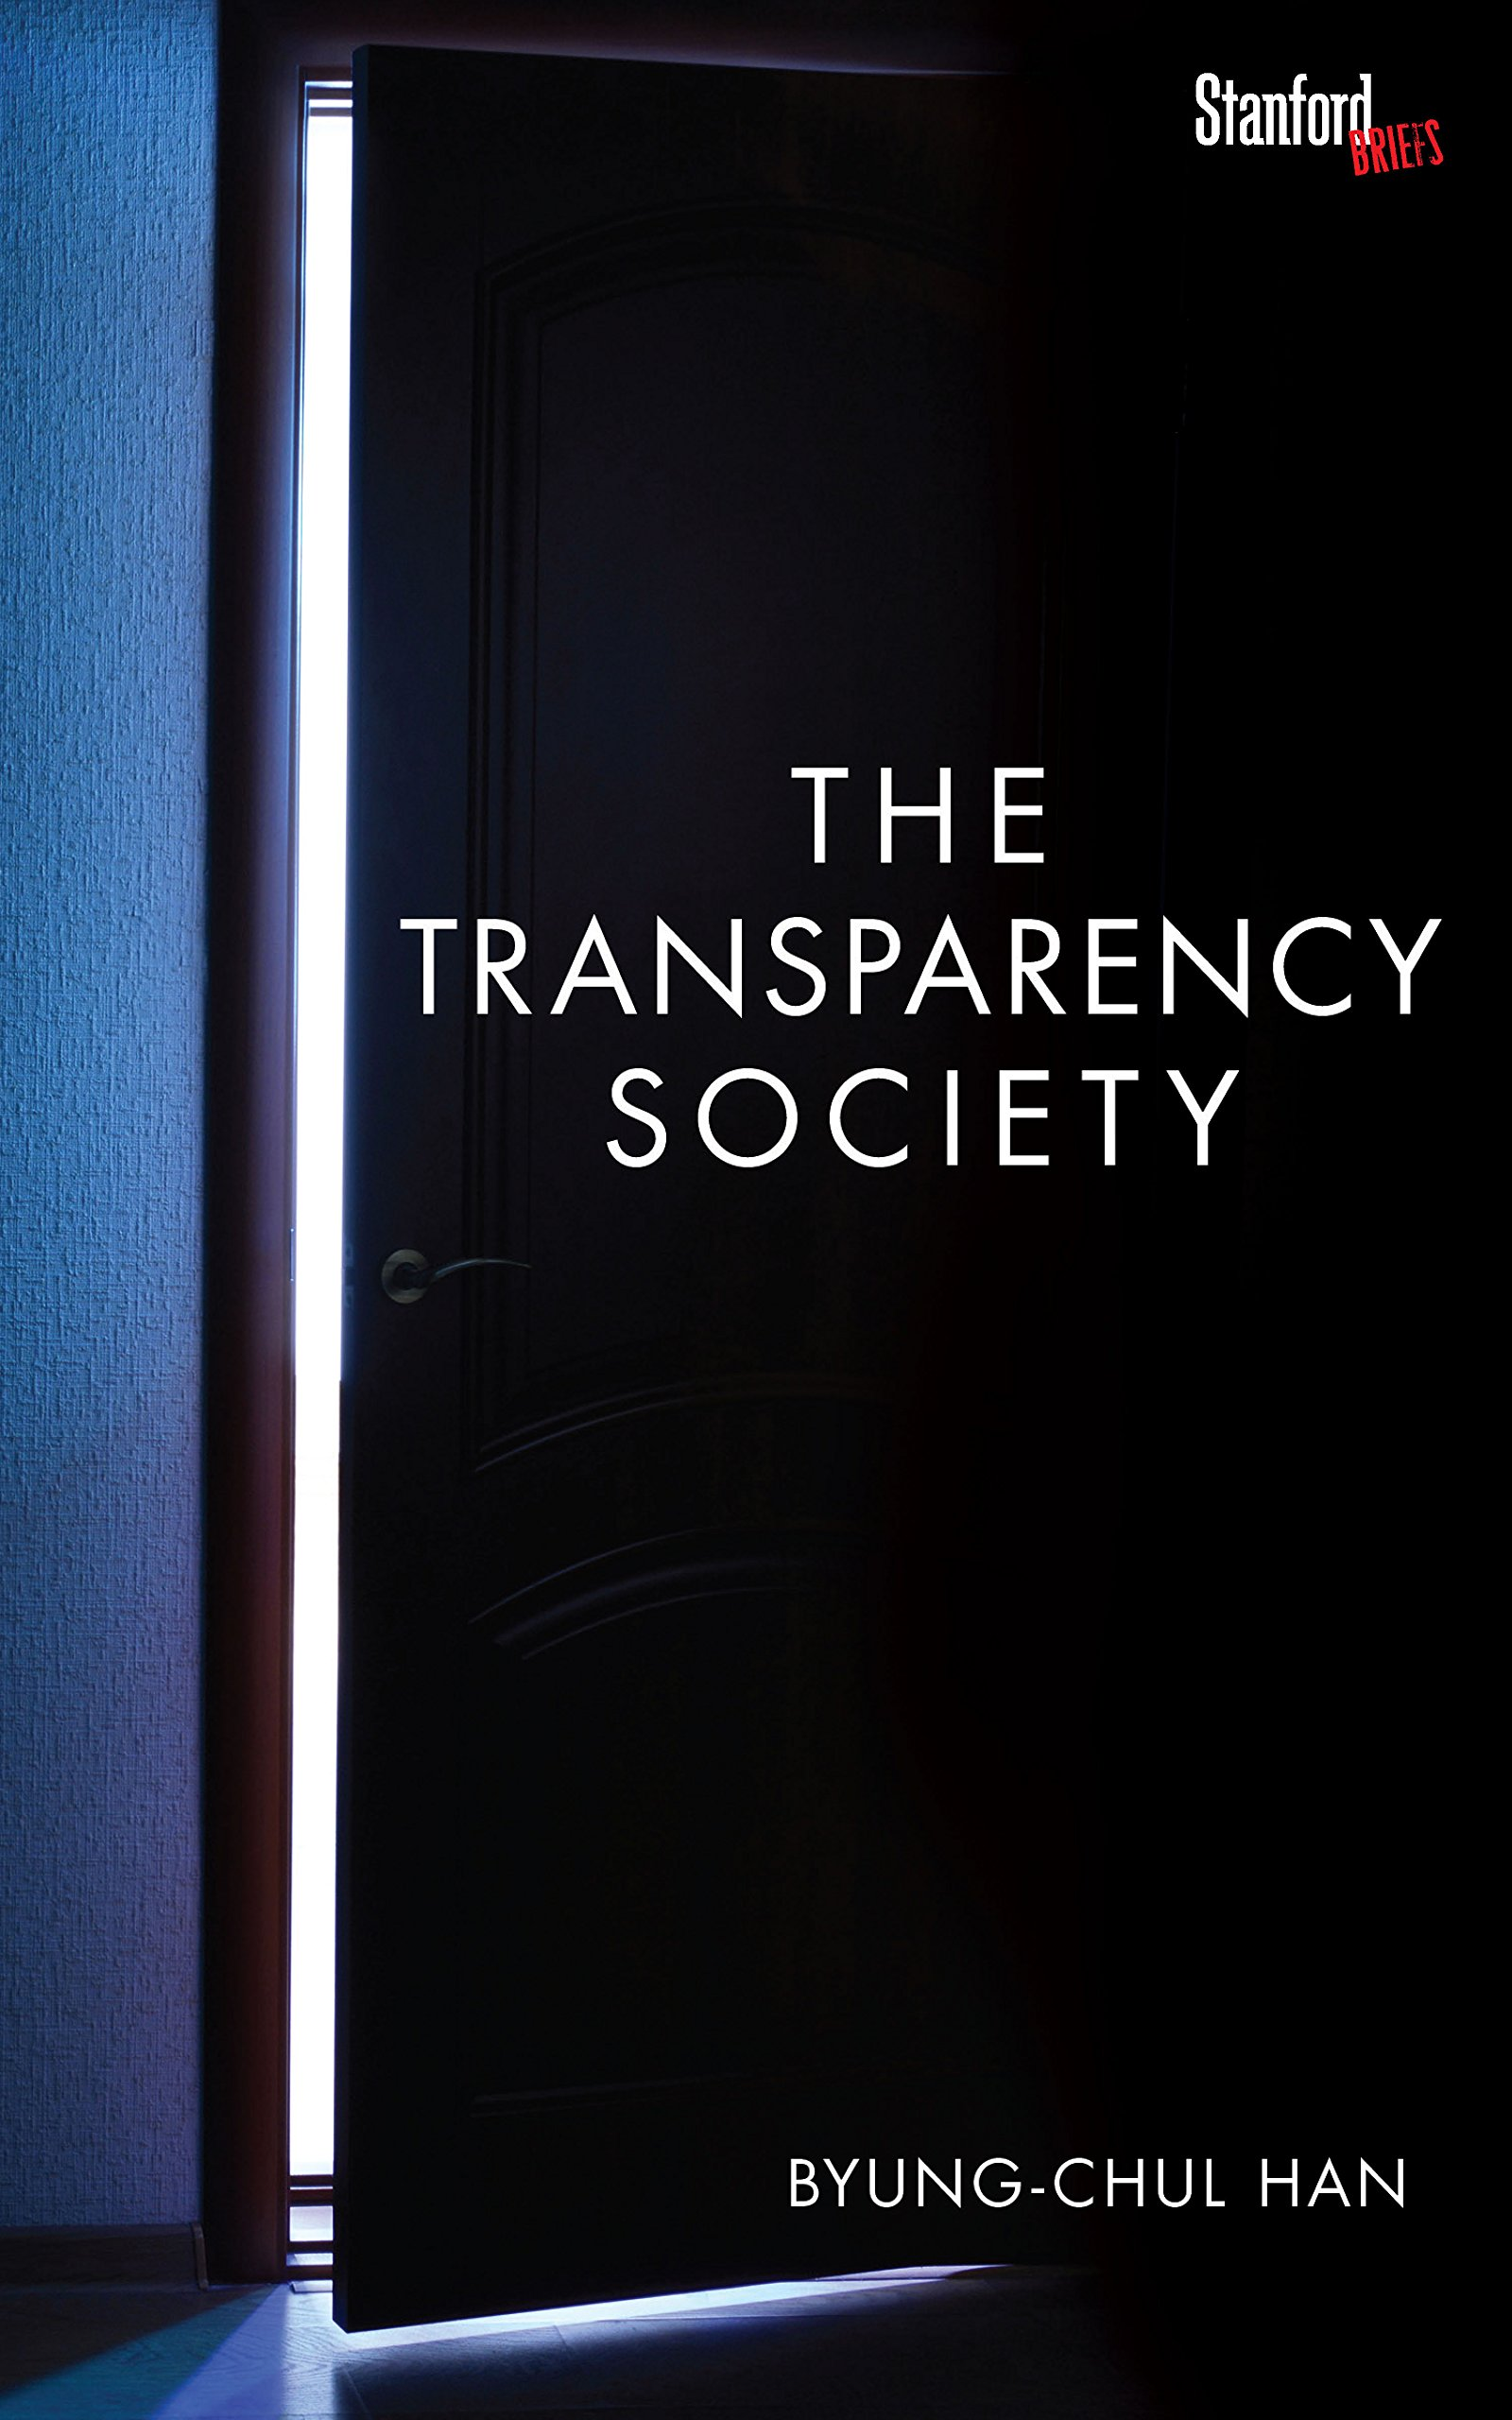 The Transparency Society: Amazon.co.uk: Byung-Chul Han: 9780804794602: Books